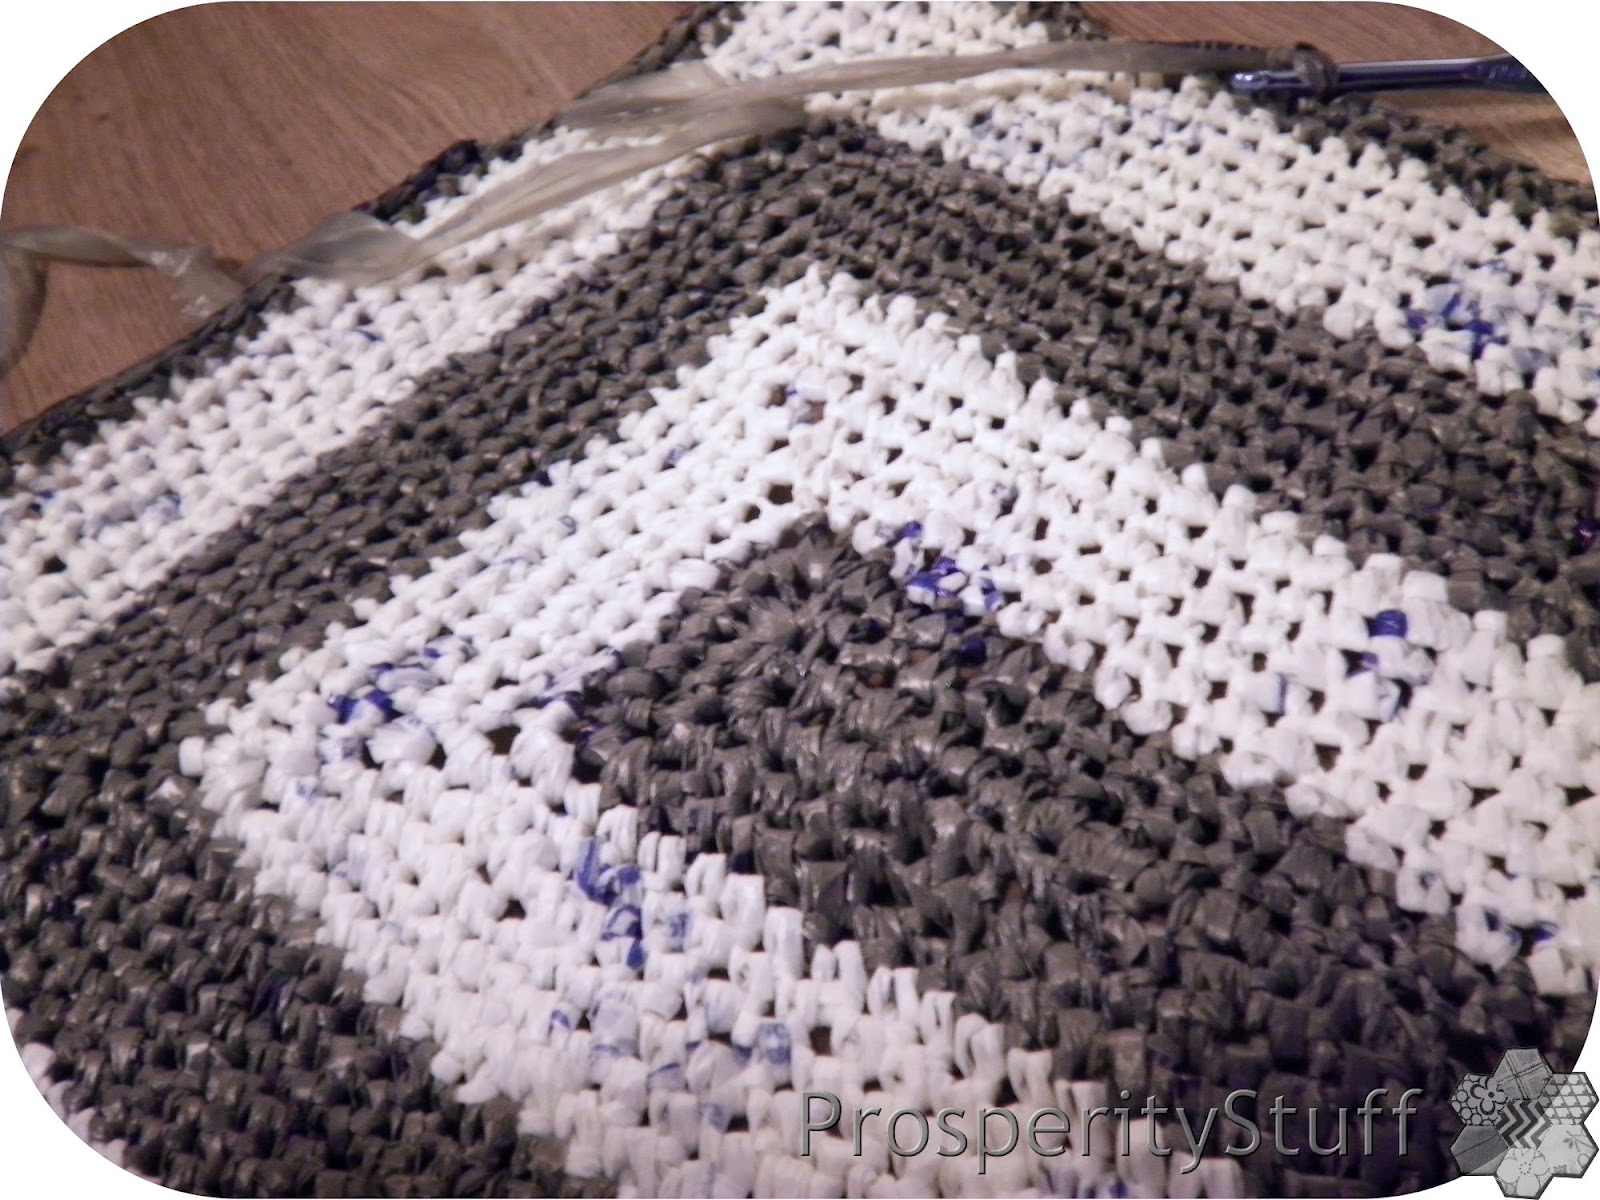 ProsperityStuff Quilts: The Plarn Rug